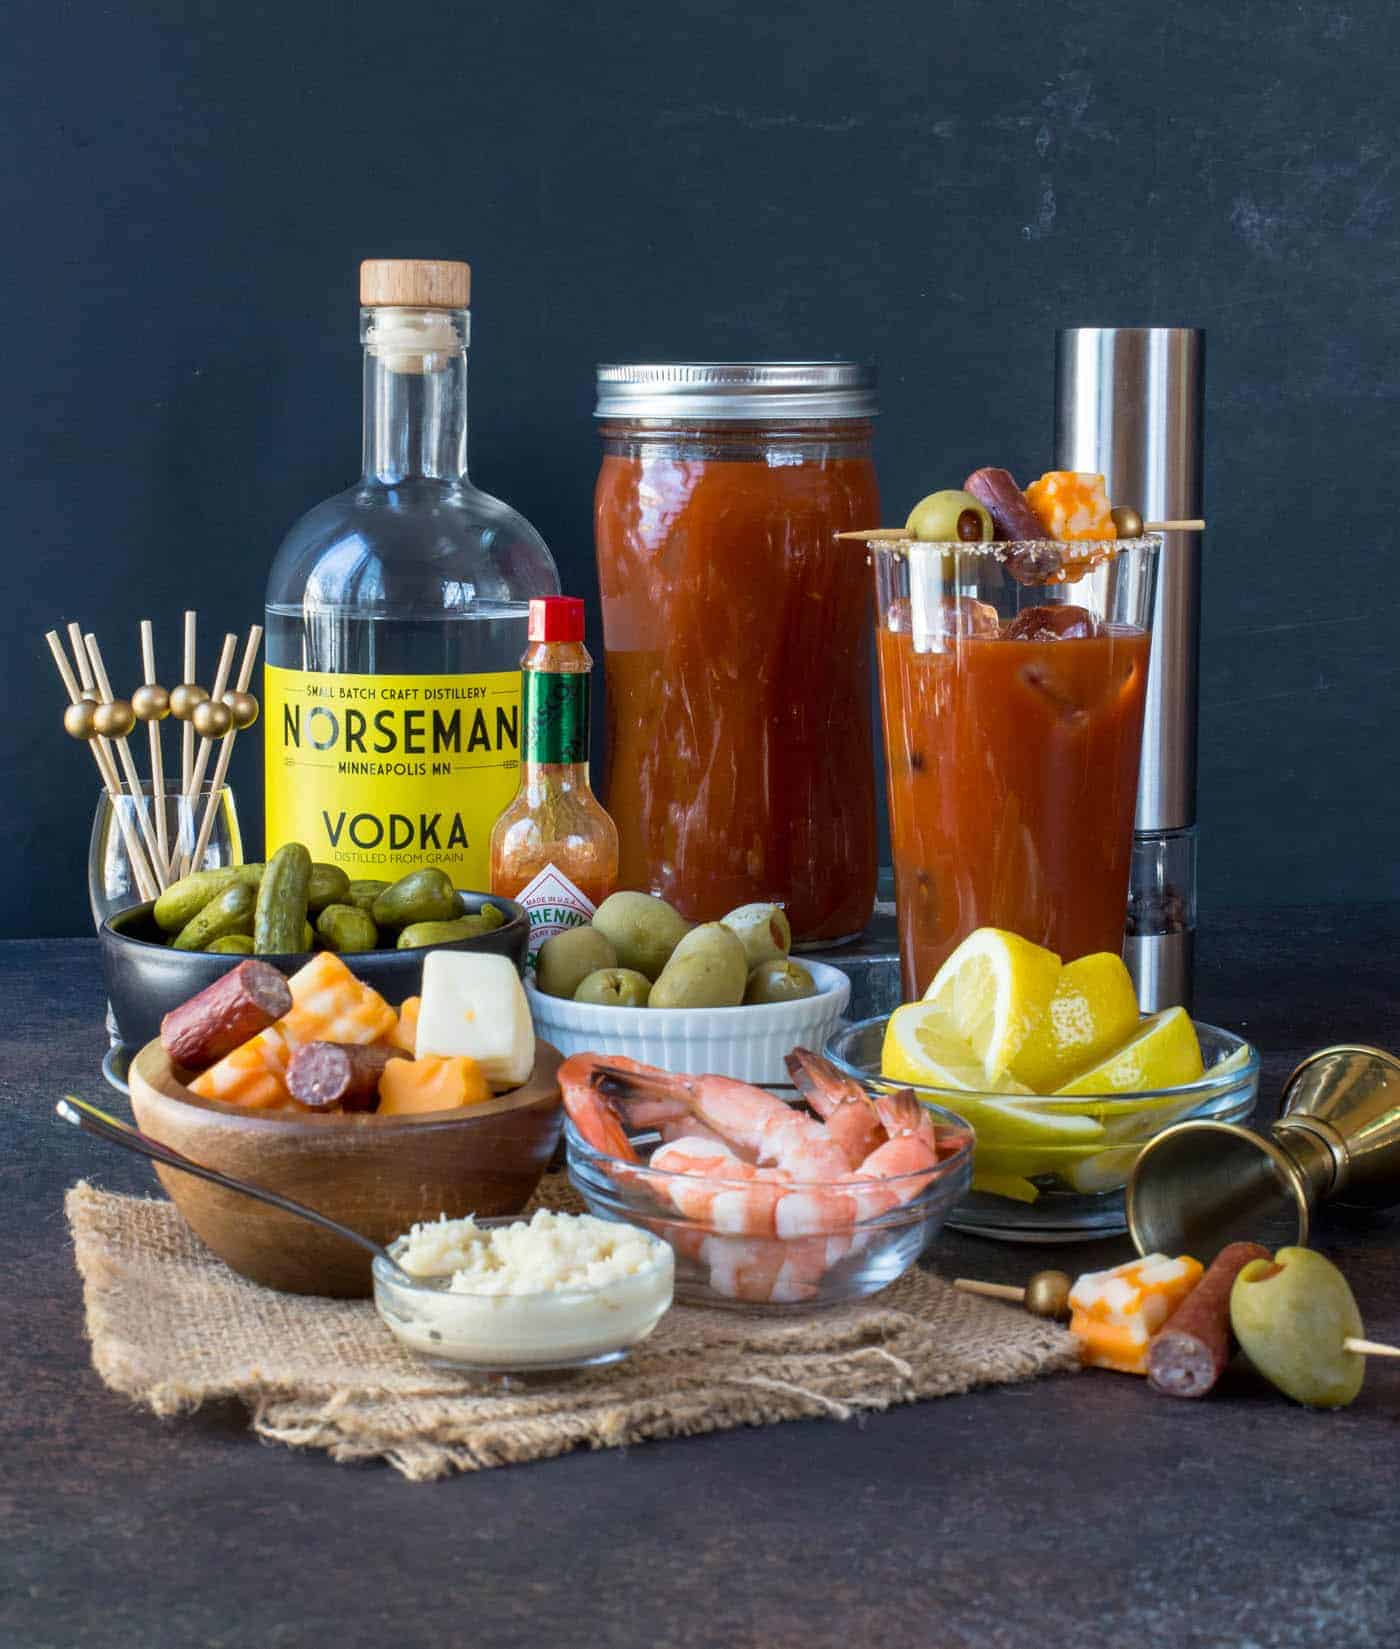 Bloody Mary Bar complete with vodka, , shrimp, salami, olives and cheese for garnishes.